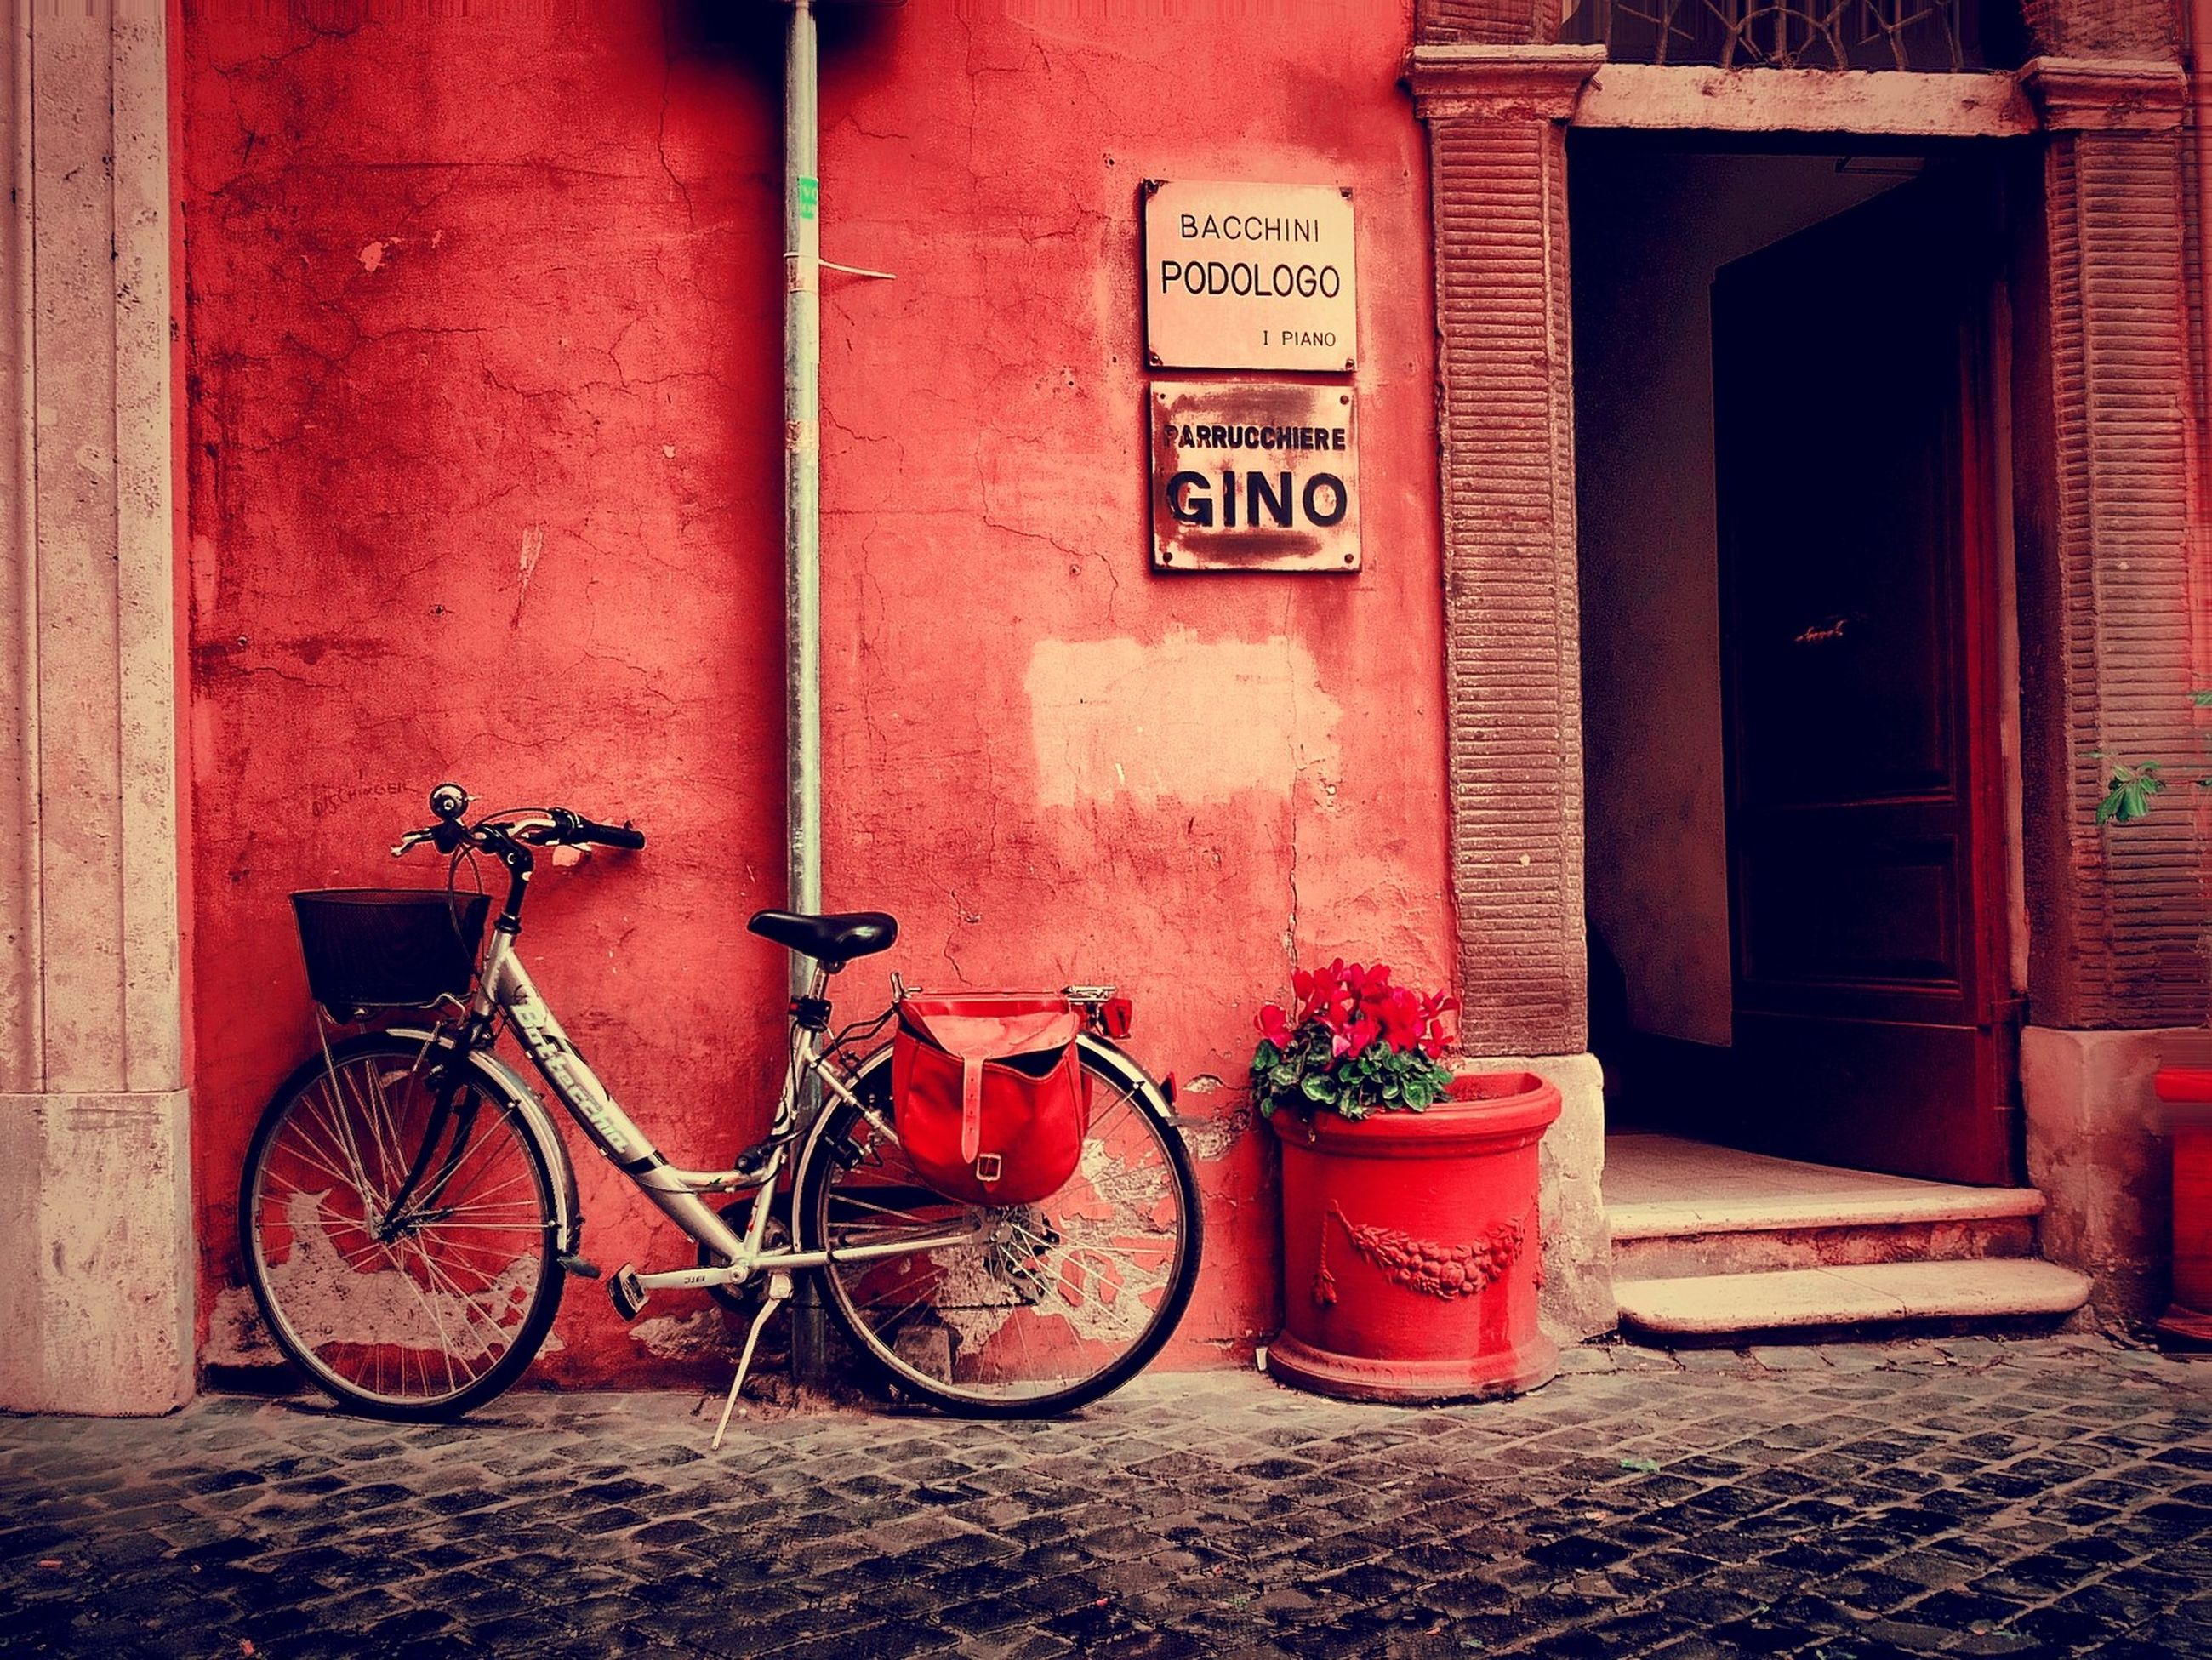 building exterior, red, architecture, built structure, bicycle, wall - building feature, house, parked, stationary, transportation, potted plant, wall, door, outdoors, parking, closed, day, brick wall, no people, flower